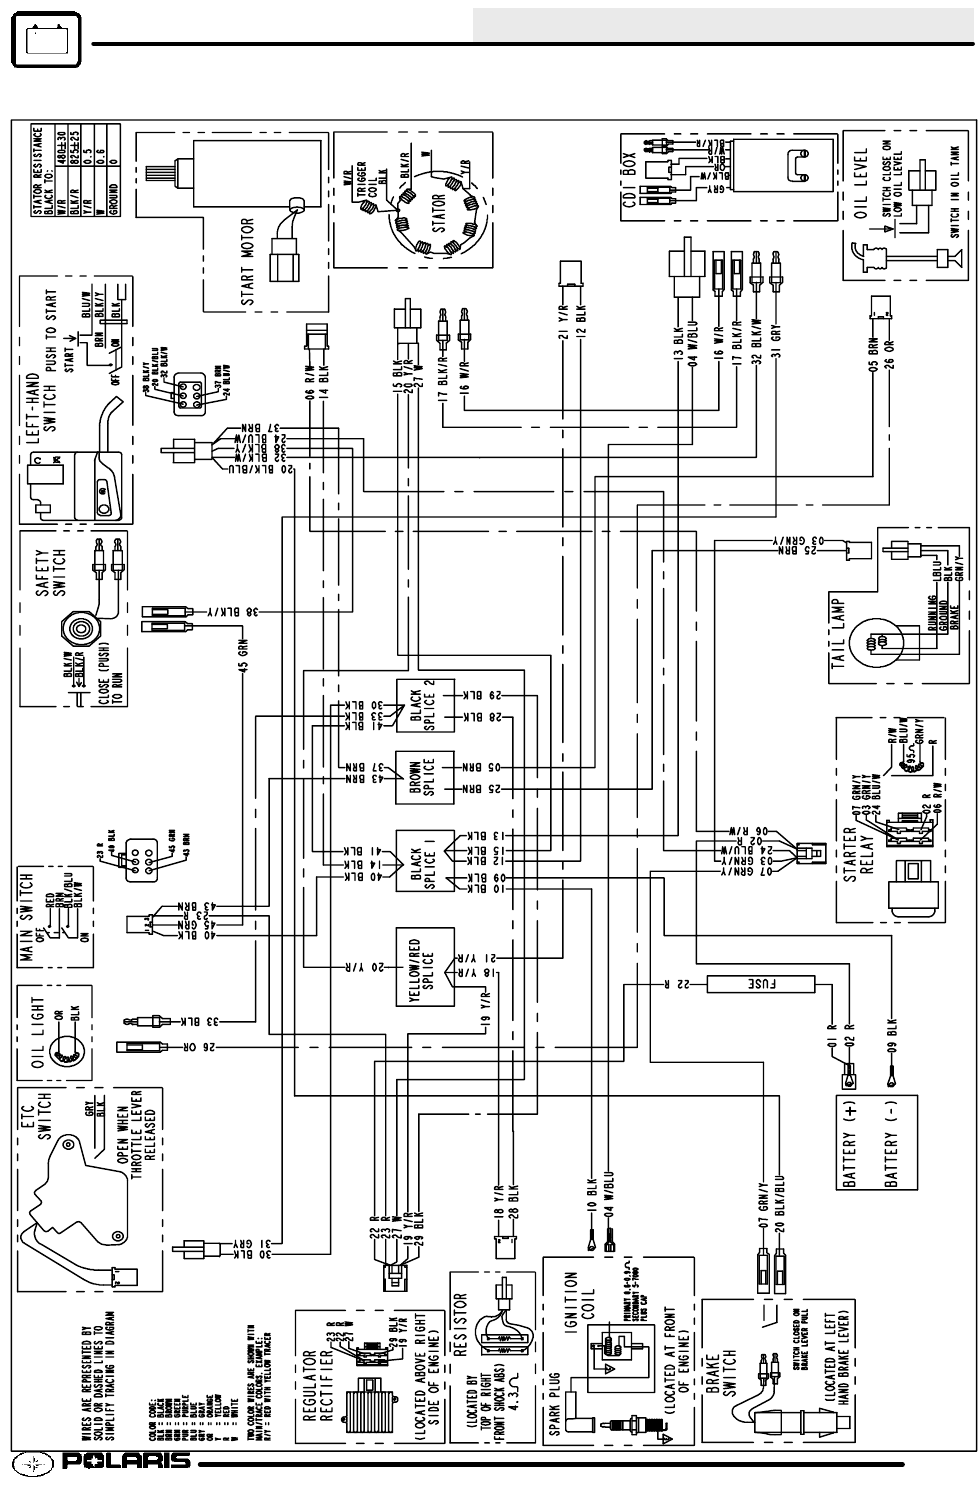 Wiring Diagram For 1998 Polaris Sportsman 500